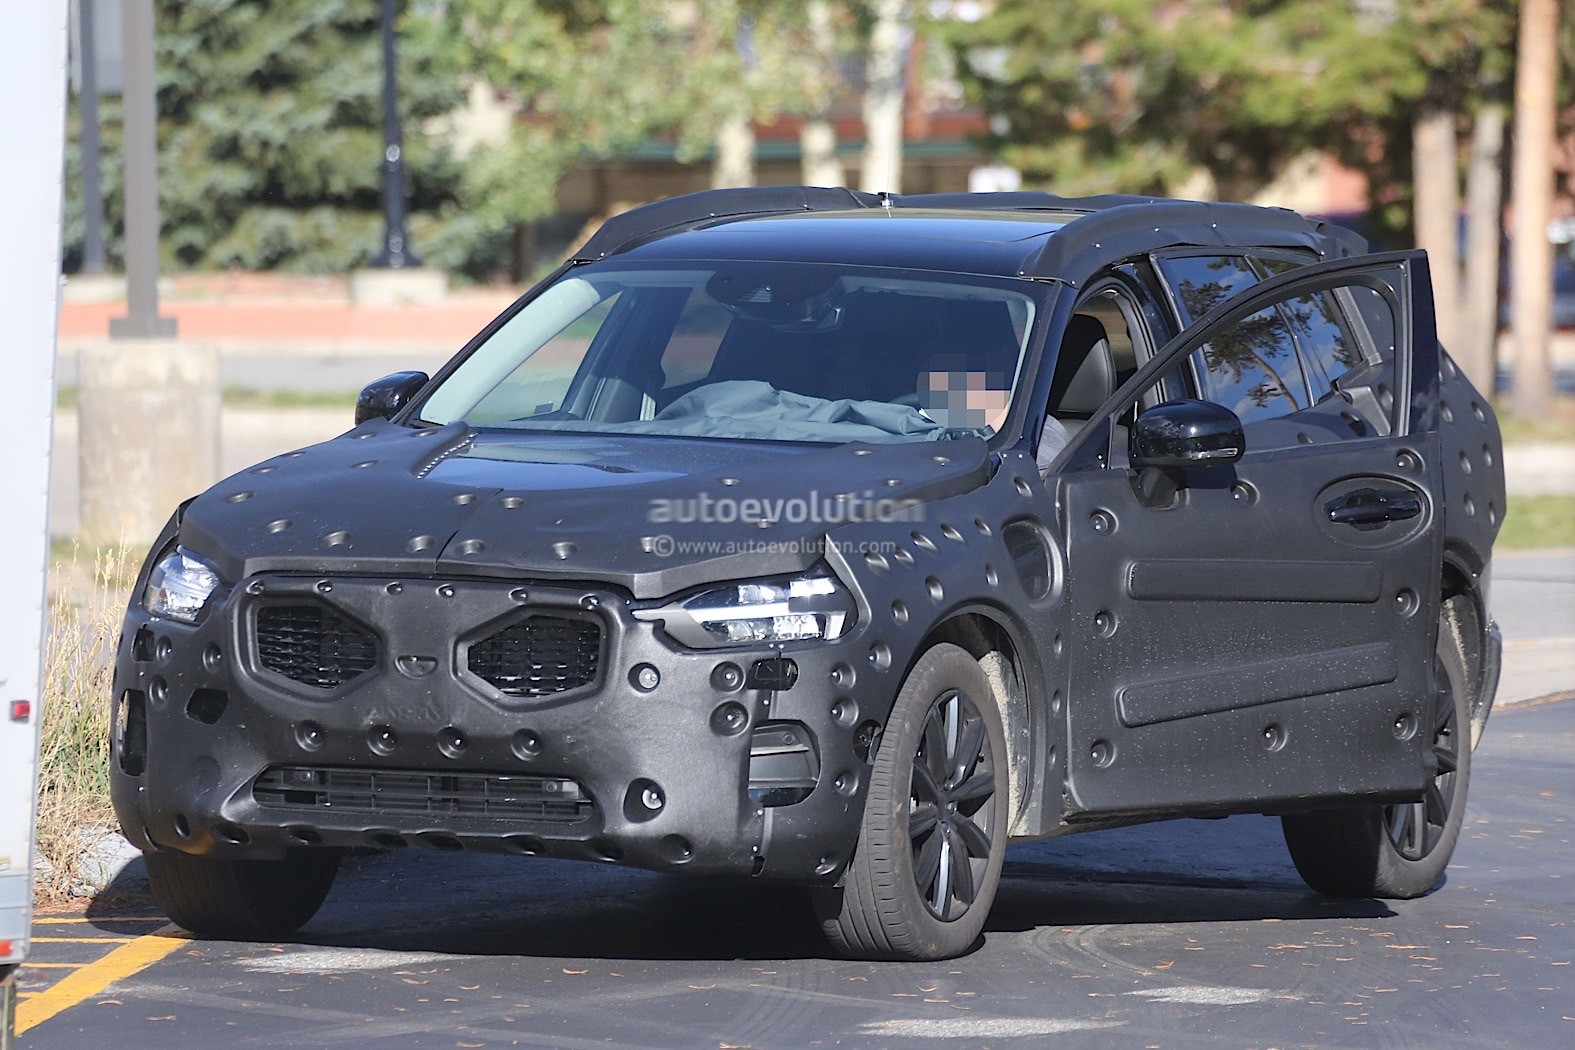 2018 Volvo XC60 Prototype Shows Some of its Interior - autoevolution